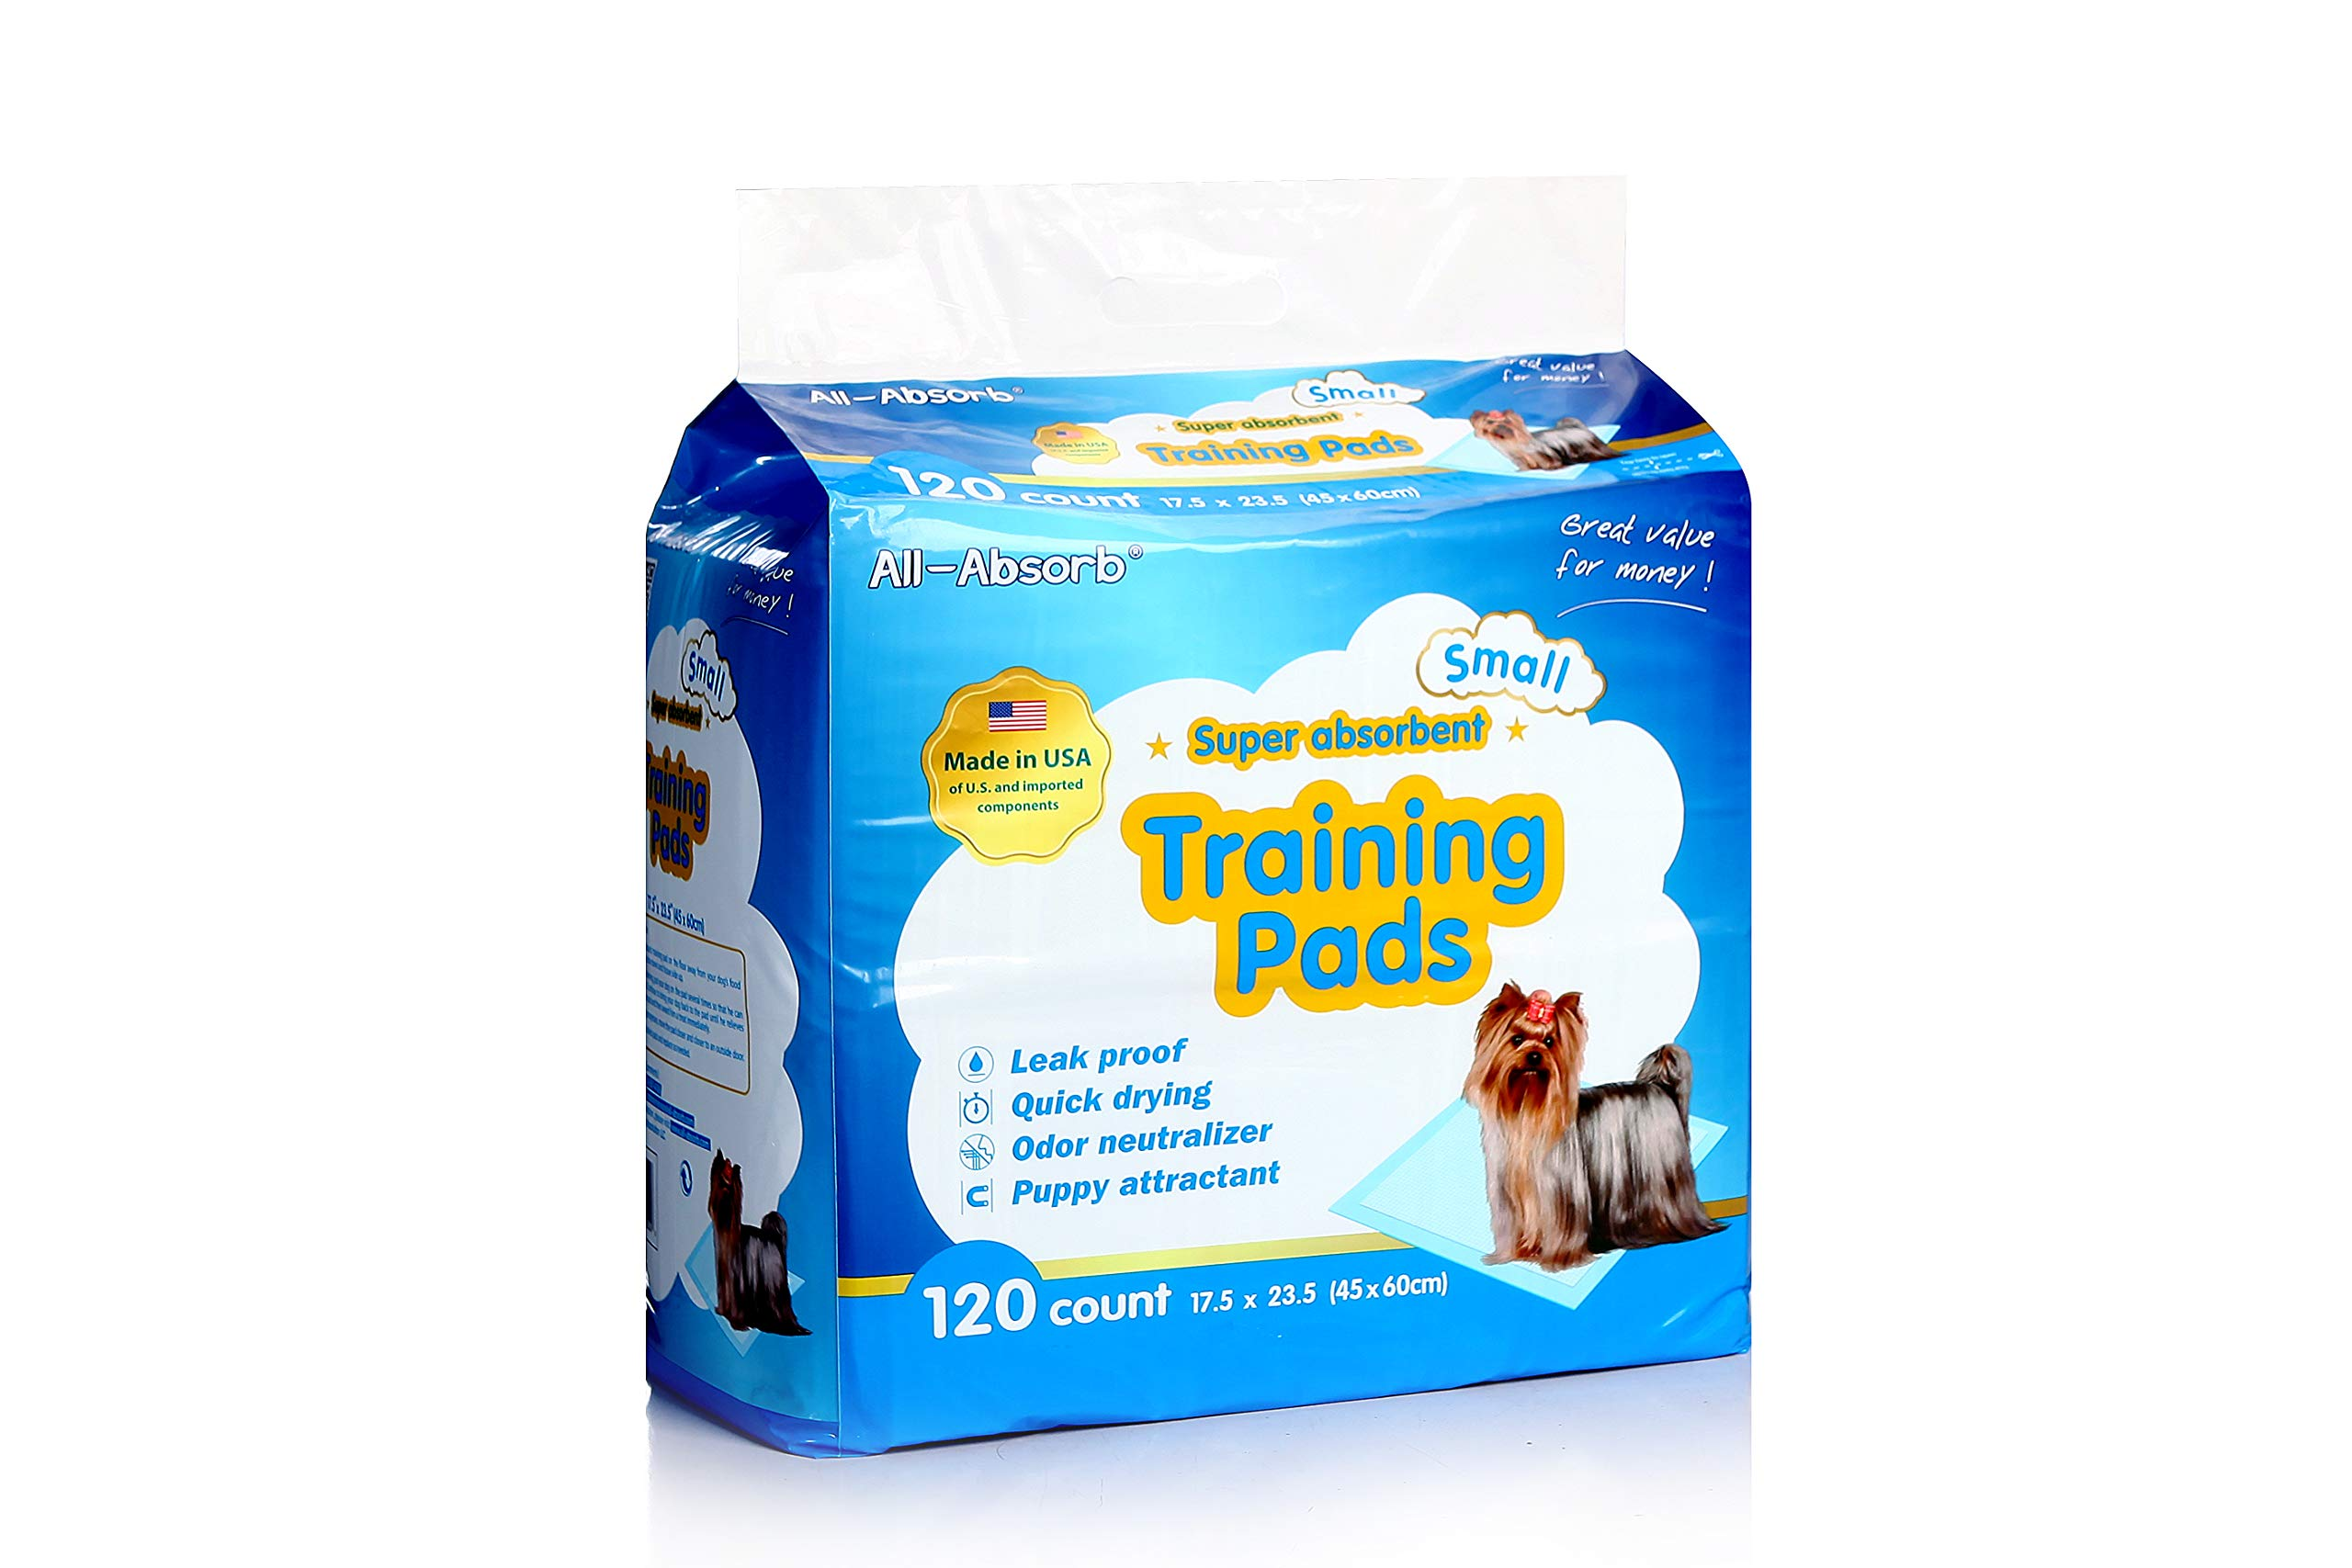 dog supplies online all-absorb 120 count training pad, 17.5 by 23.5-inch, white and blue